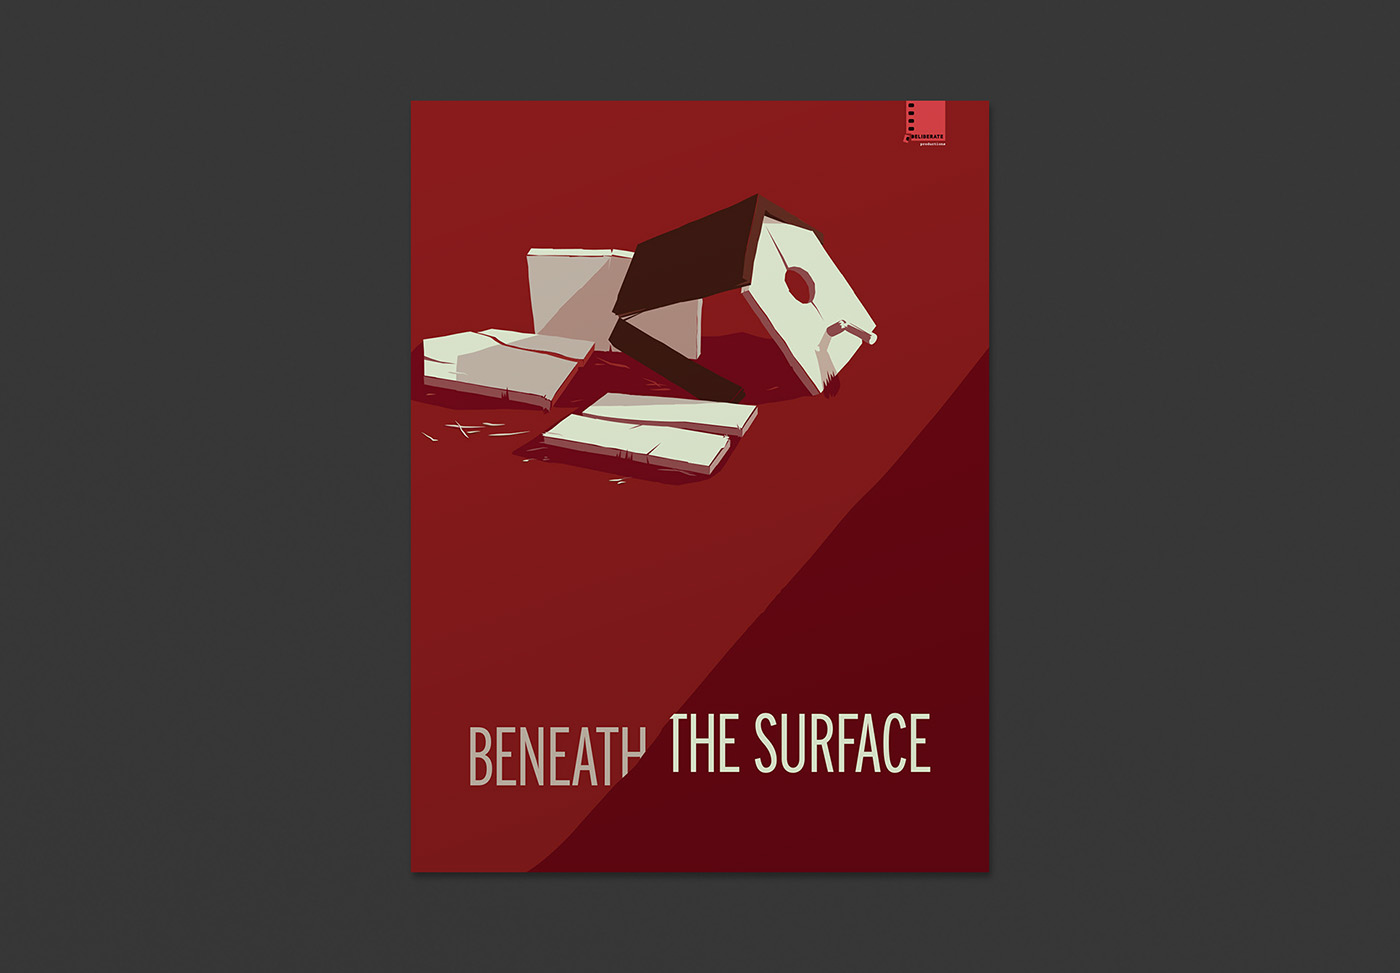 Beneath-the-Surface-poster